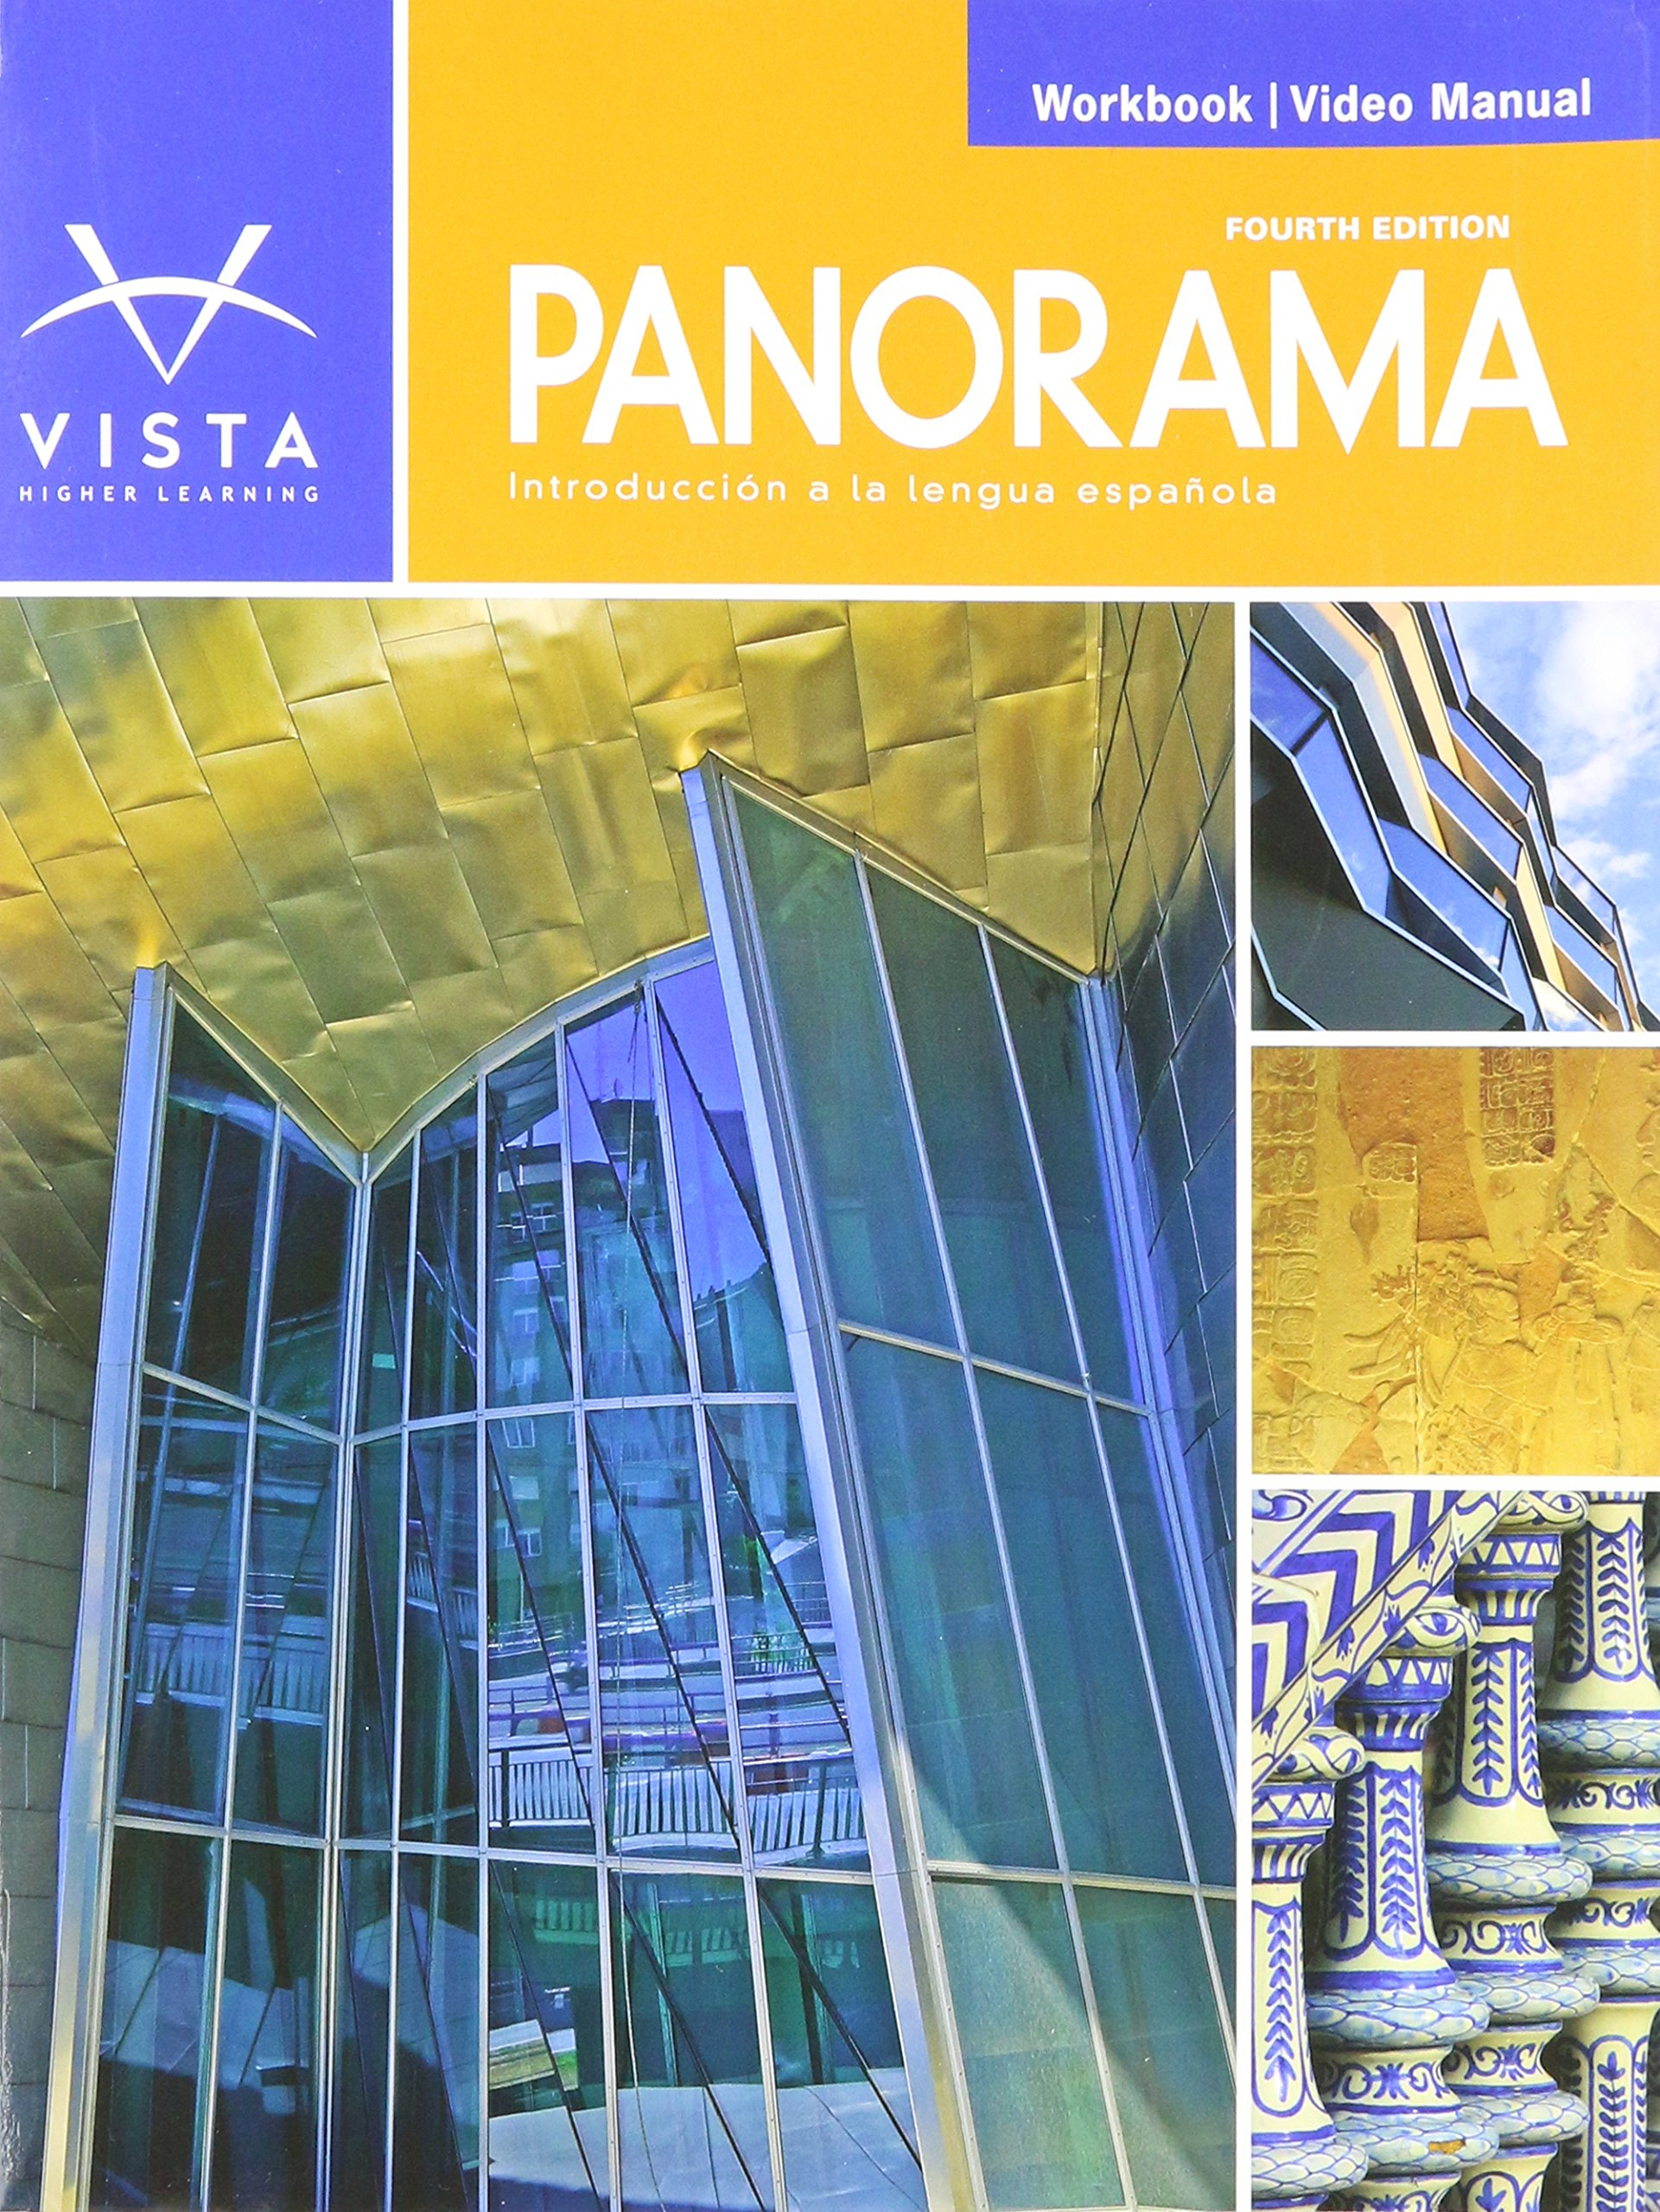 Panorama 4e workbookvideo manual vhl 9781617677106 amazon books fandeluxe Gallery